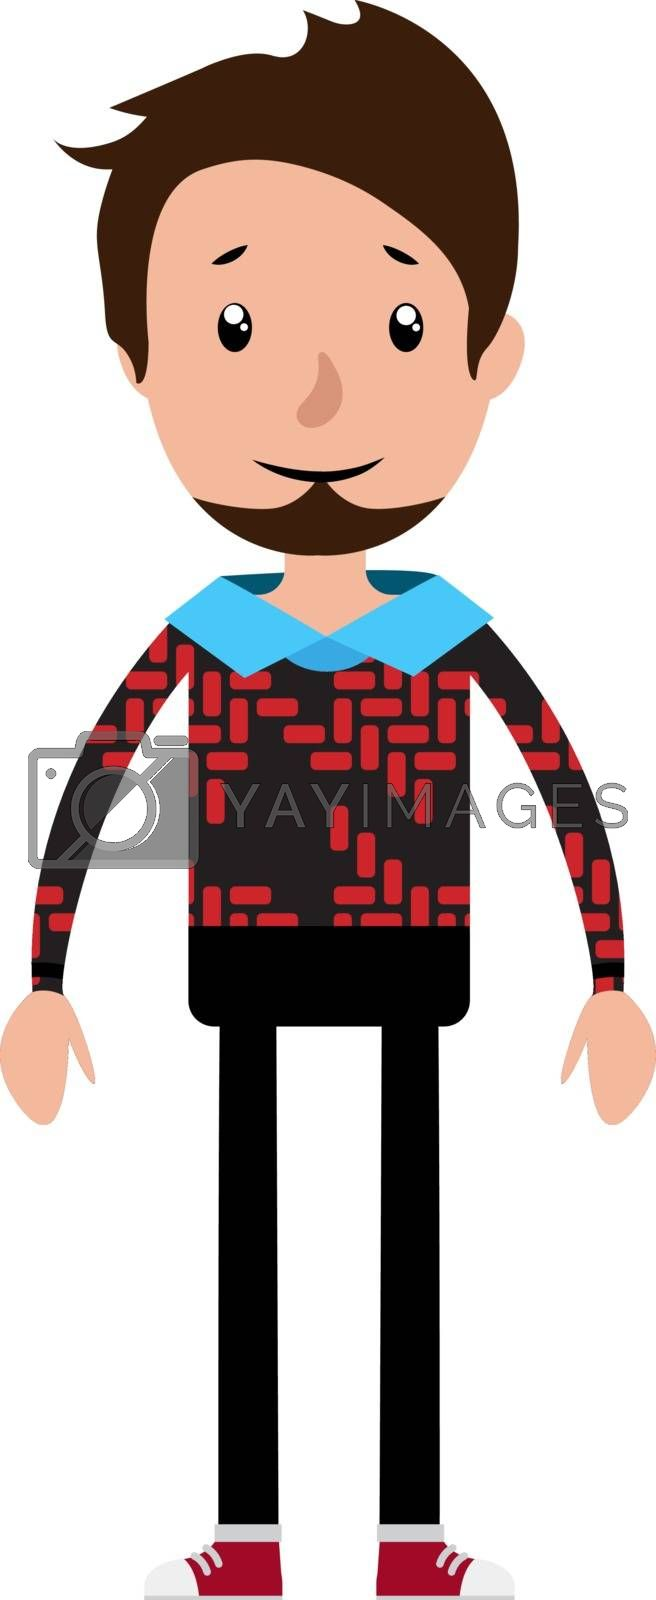 Royalty free image of A casual cool looking young man illustration vector on white bac by Morphart